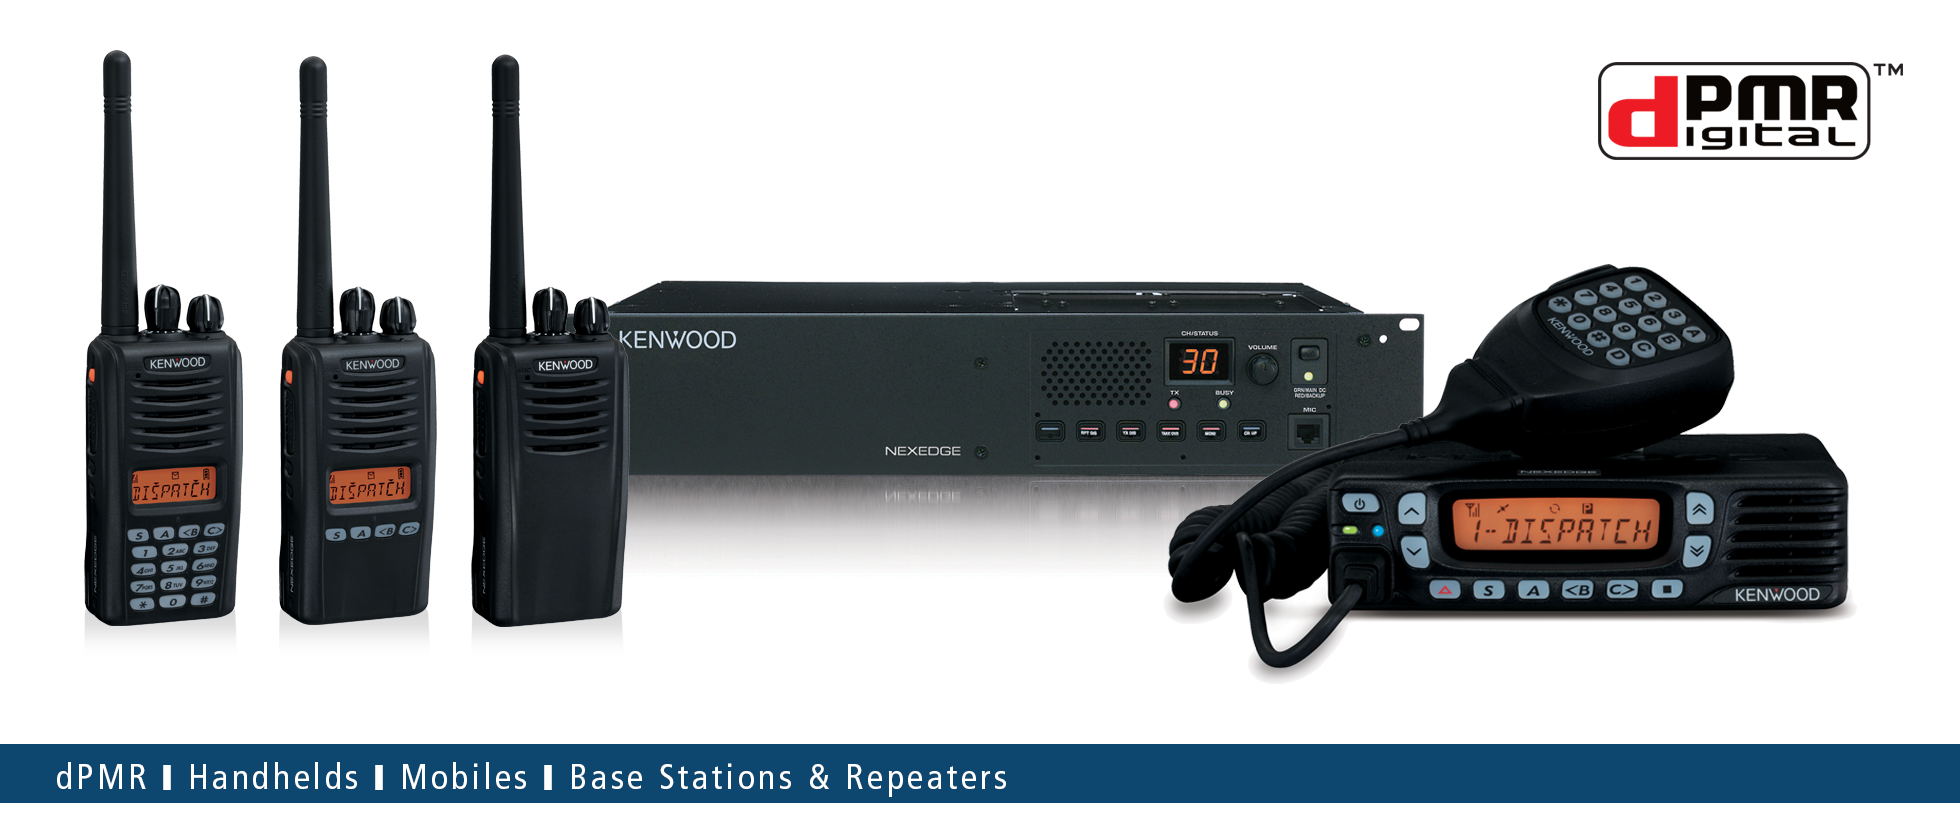 NXDN dPMR Hand Portables, Mobile Radios, Repeaters • Kenwood